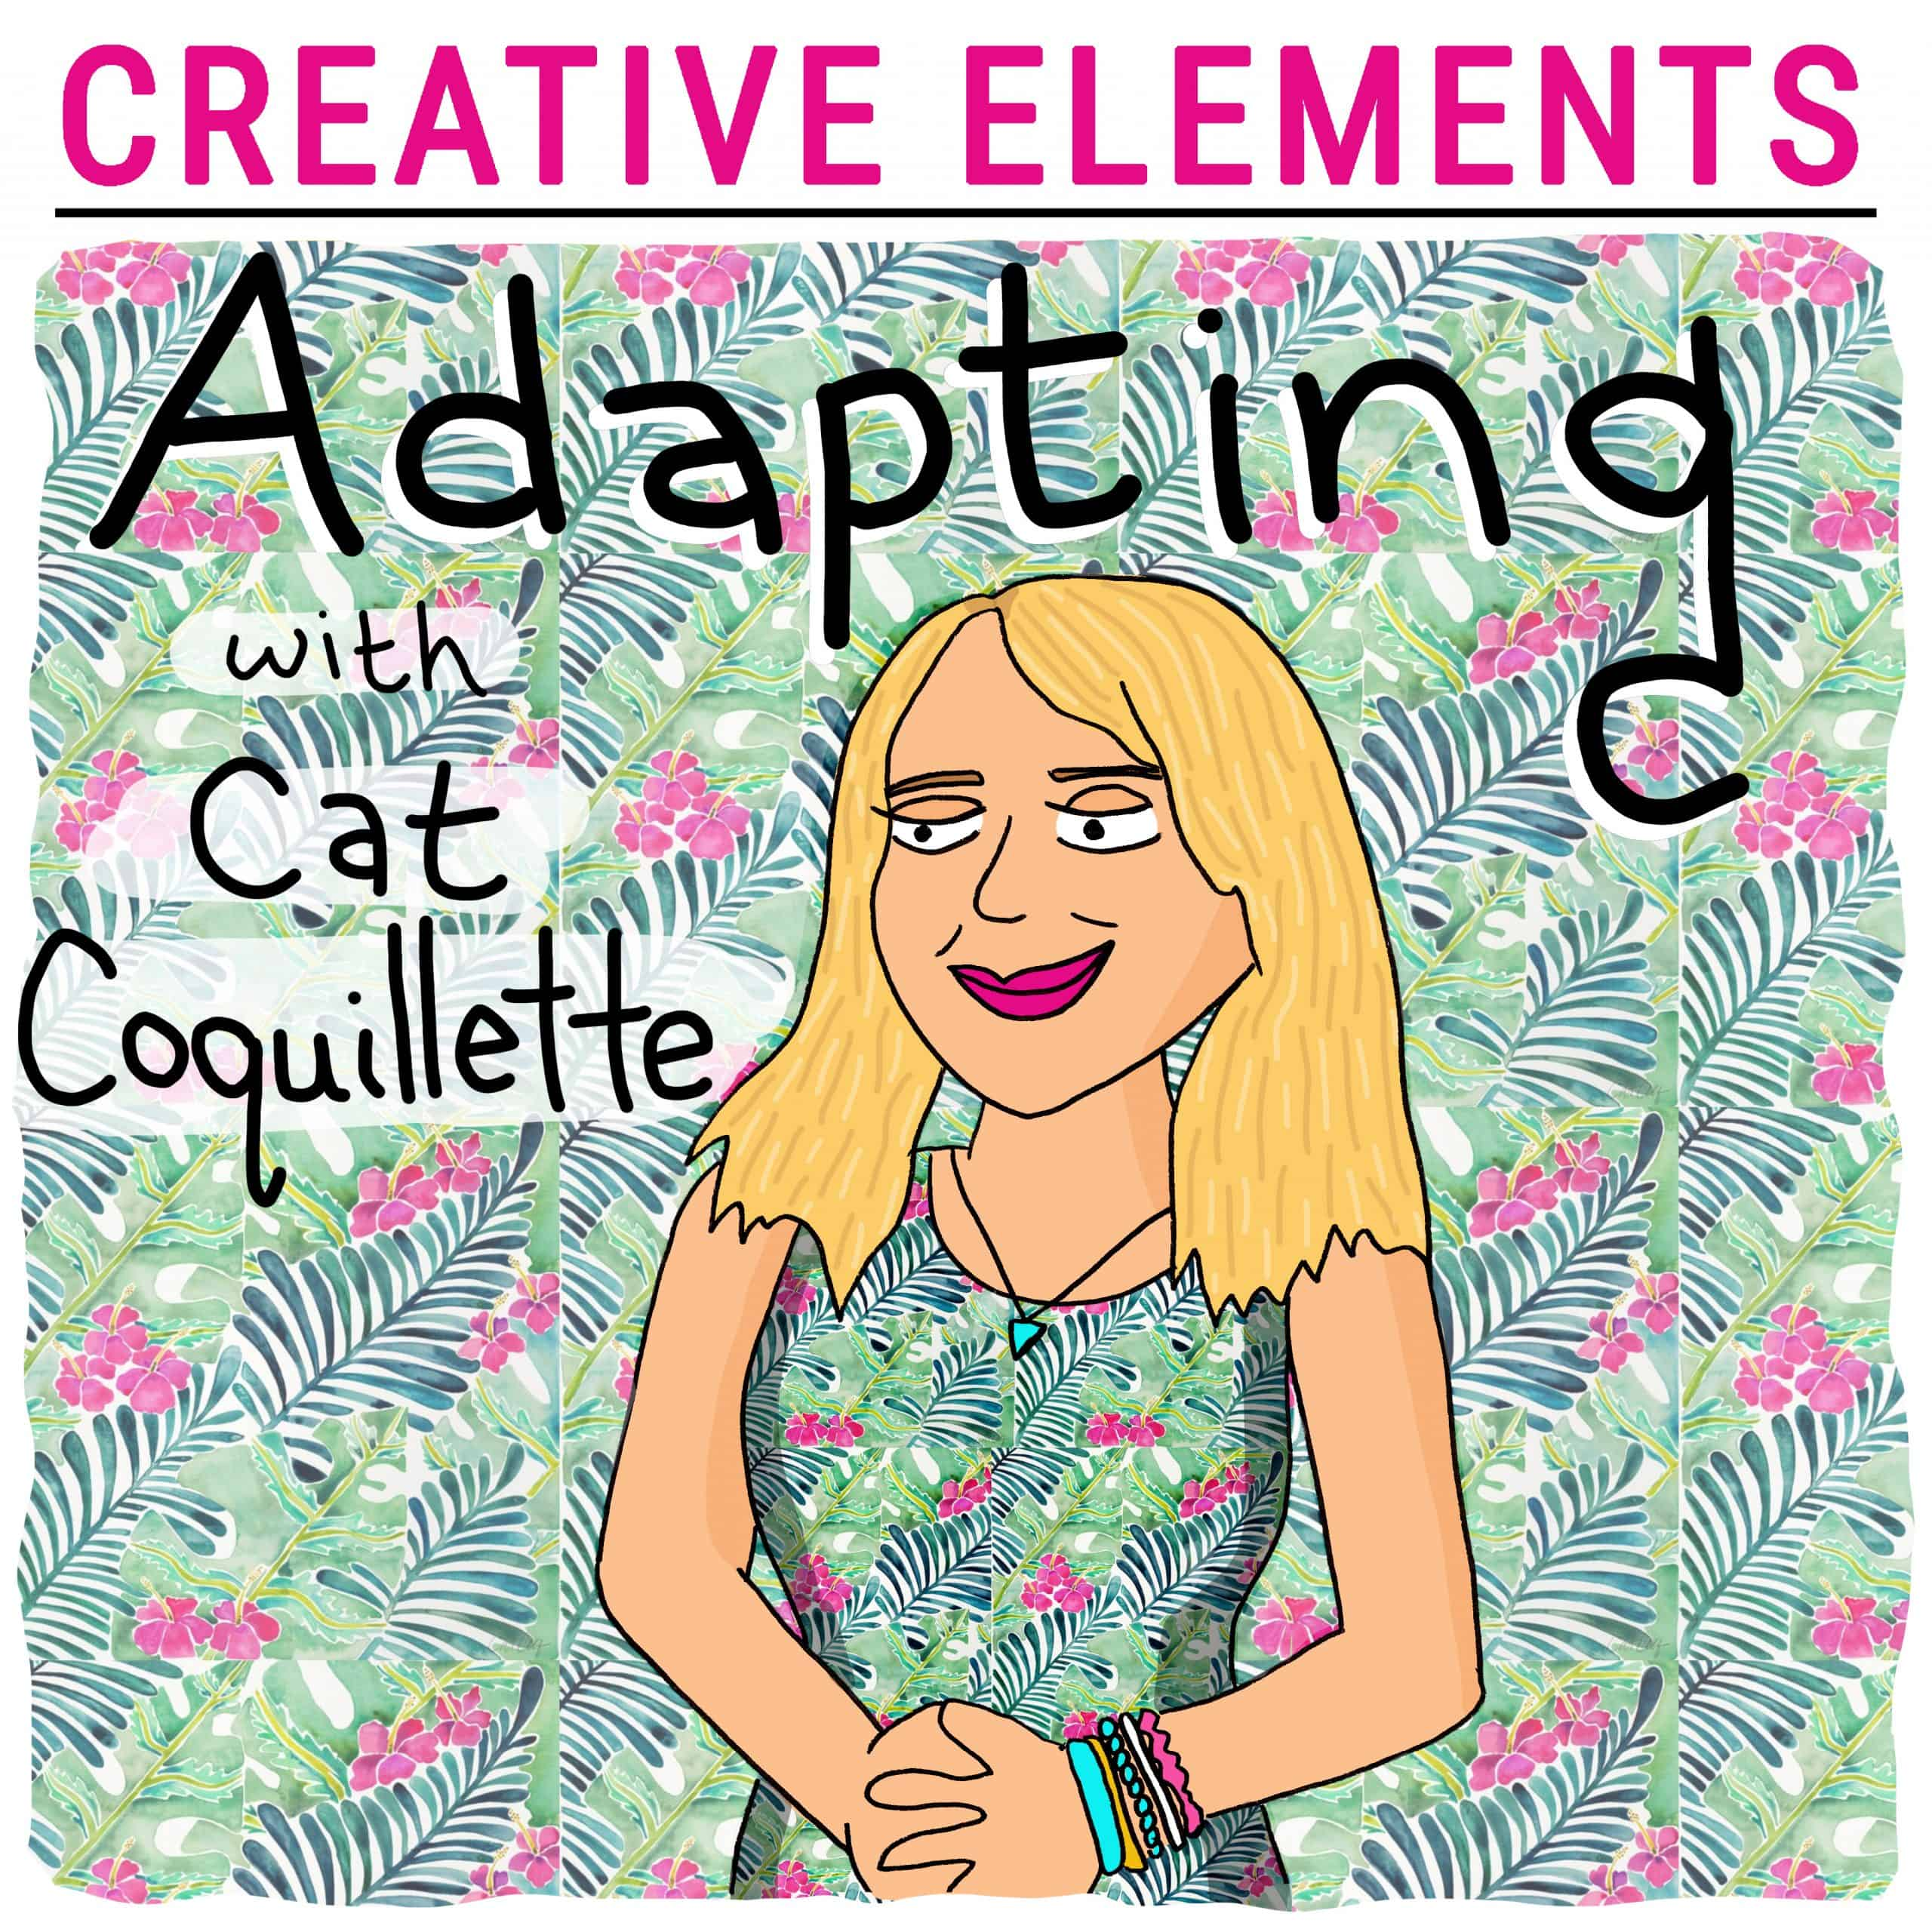 Cat Coquillette on Creative Elements